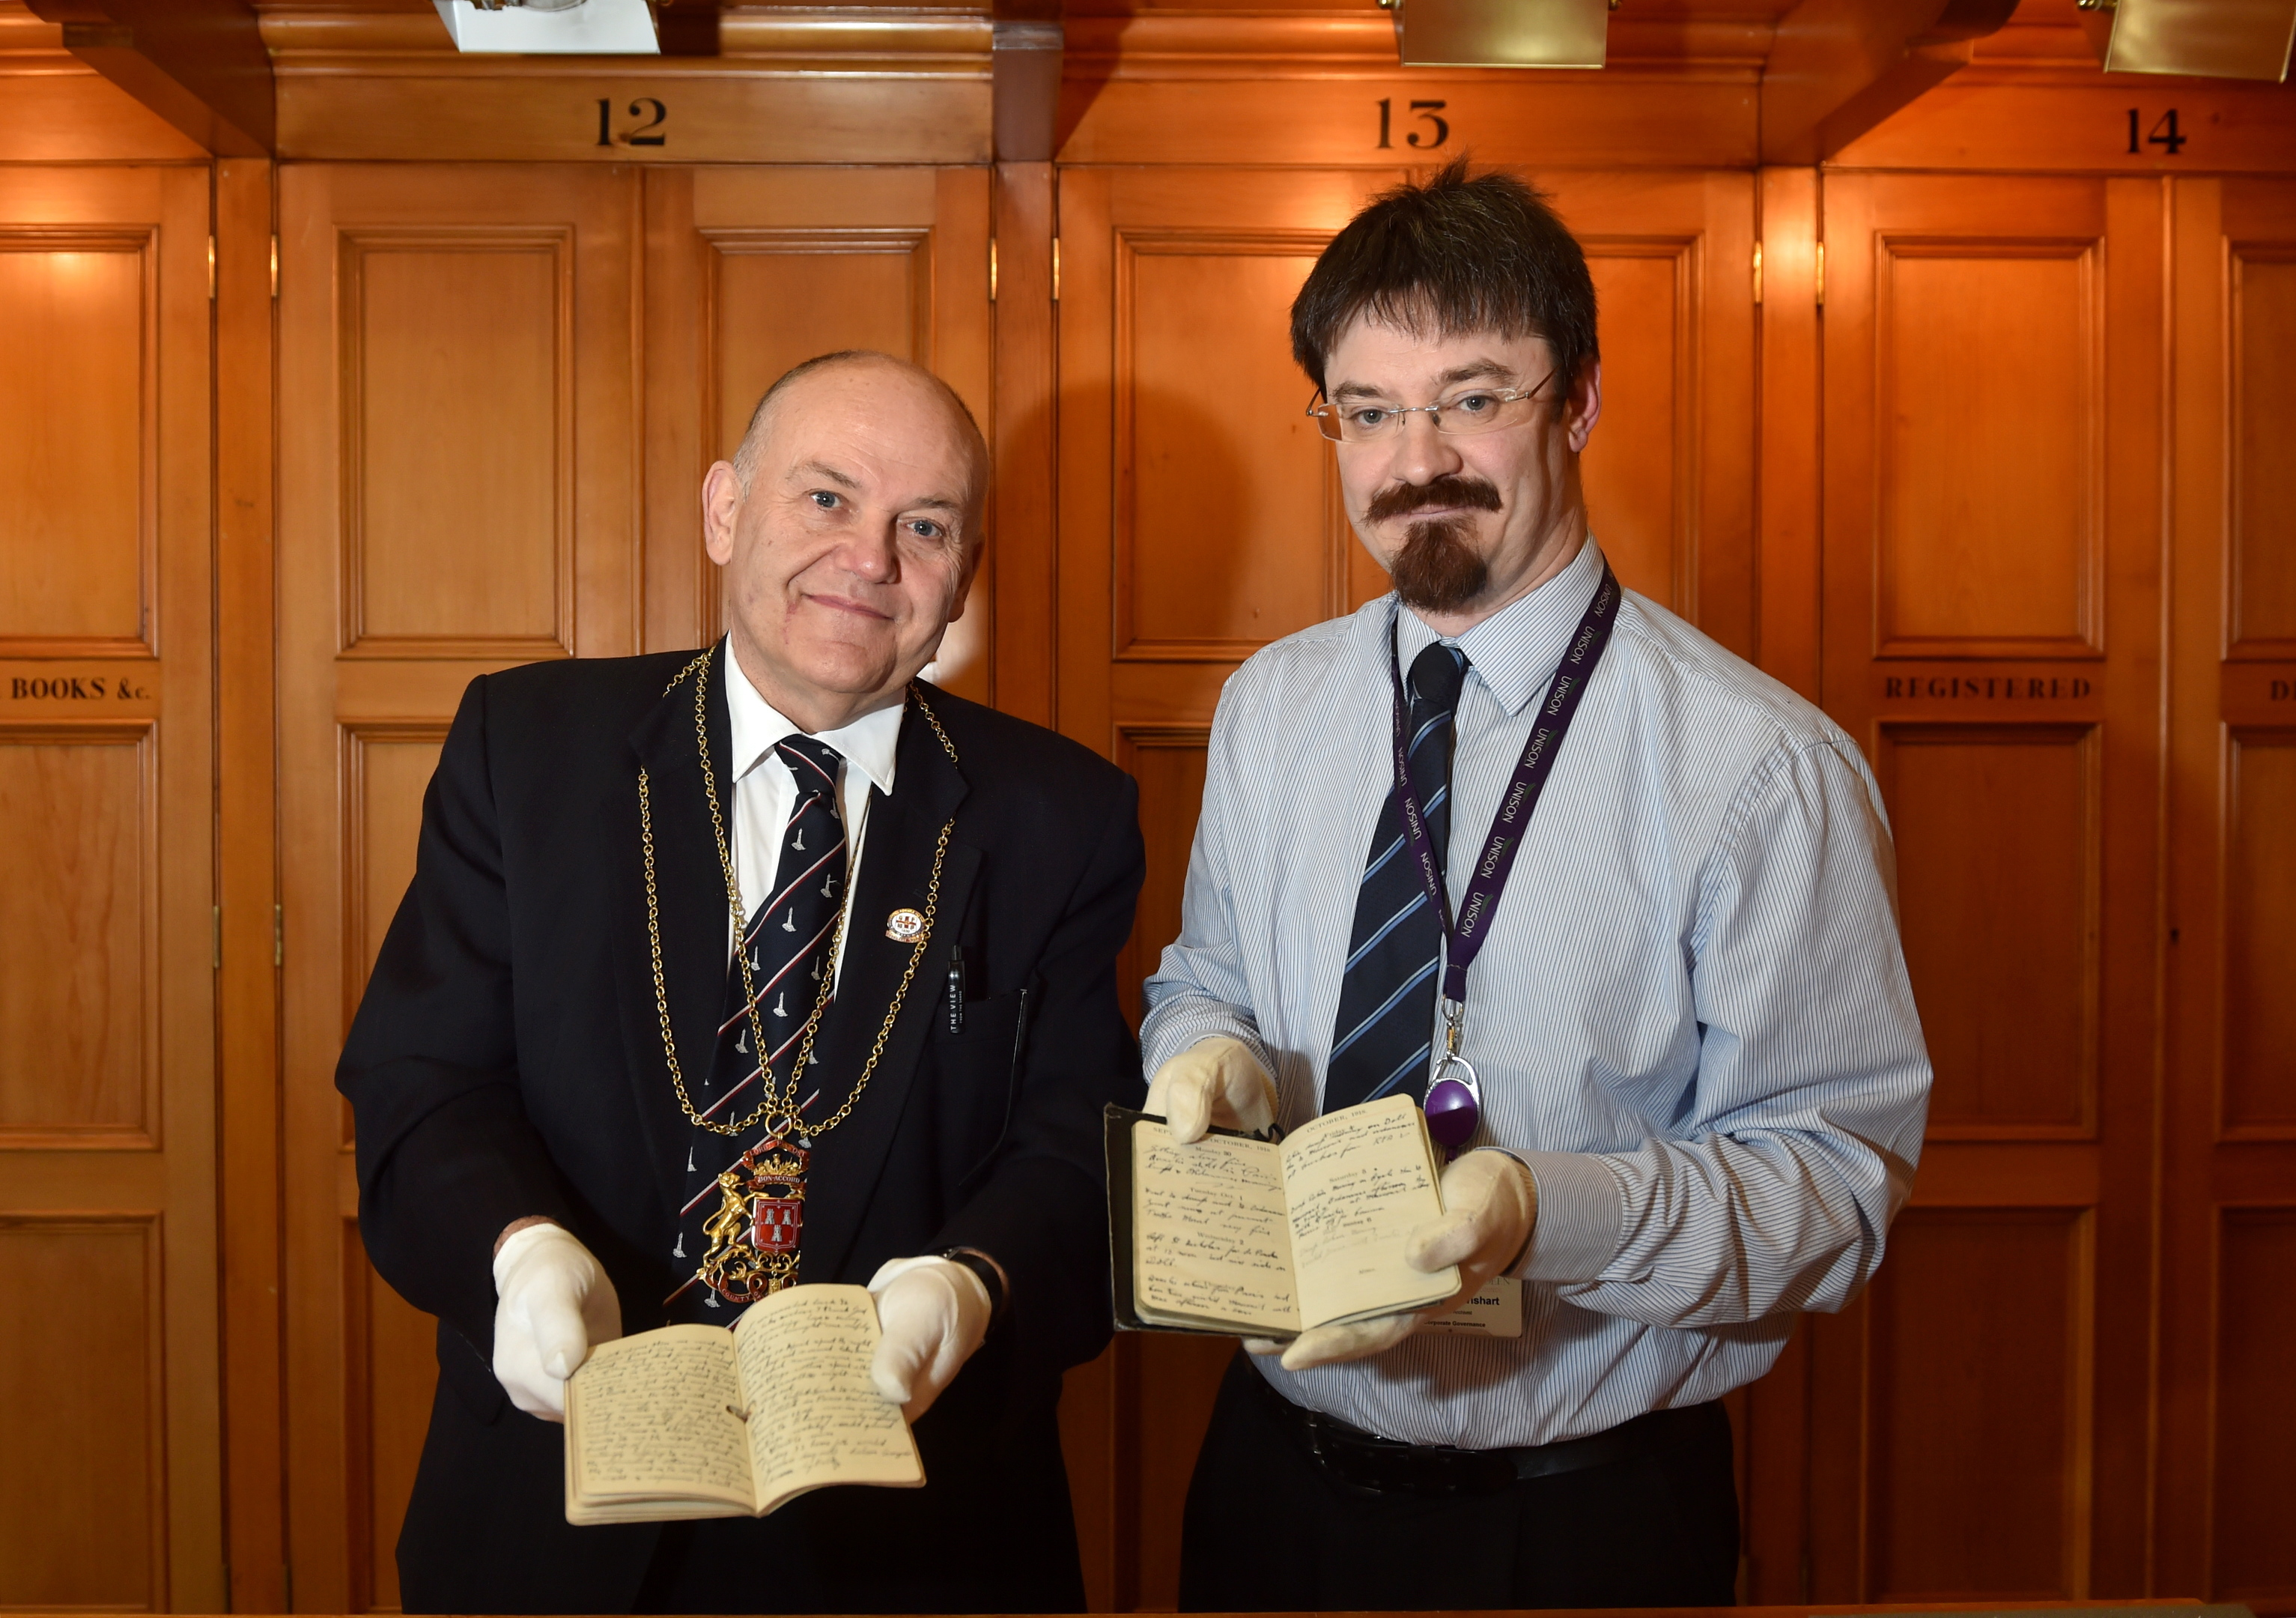 Lord Provost Barney Crockett and Ruaraidh Wishart, senior archivist at Aberdeen City and Aberdeenshire Archives, with the collection